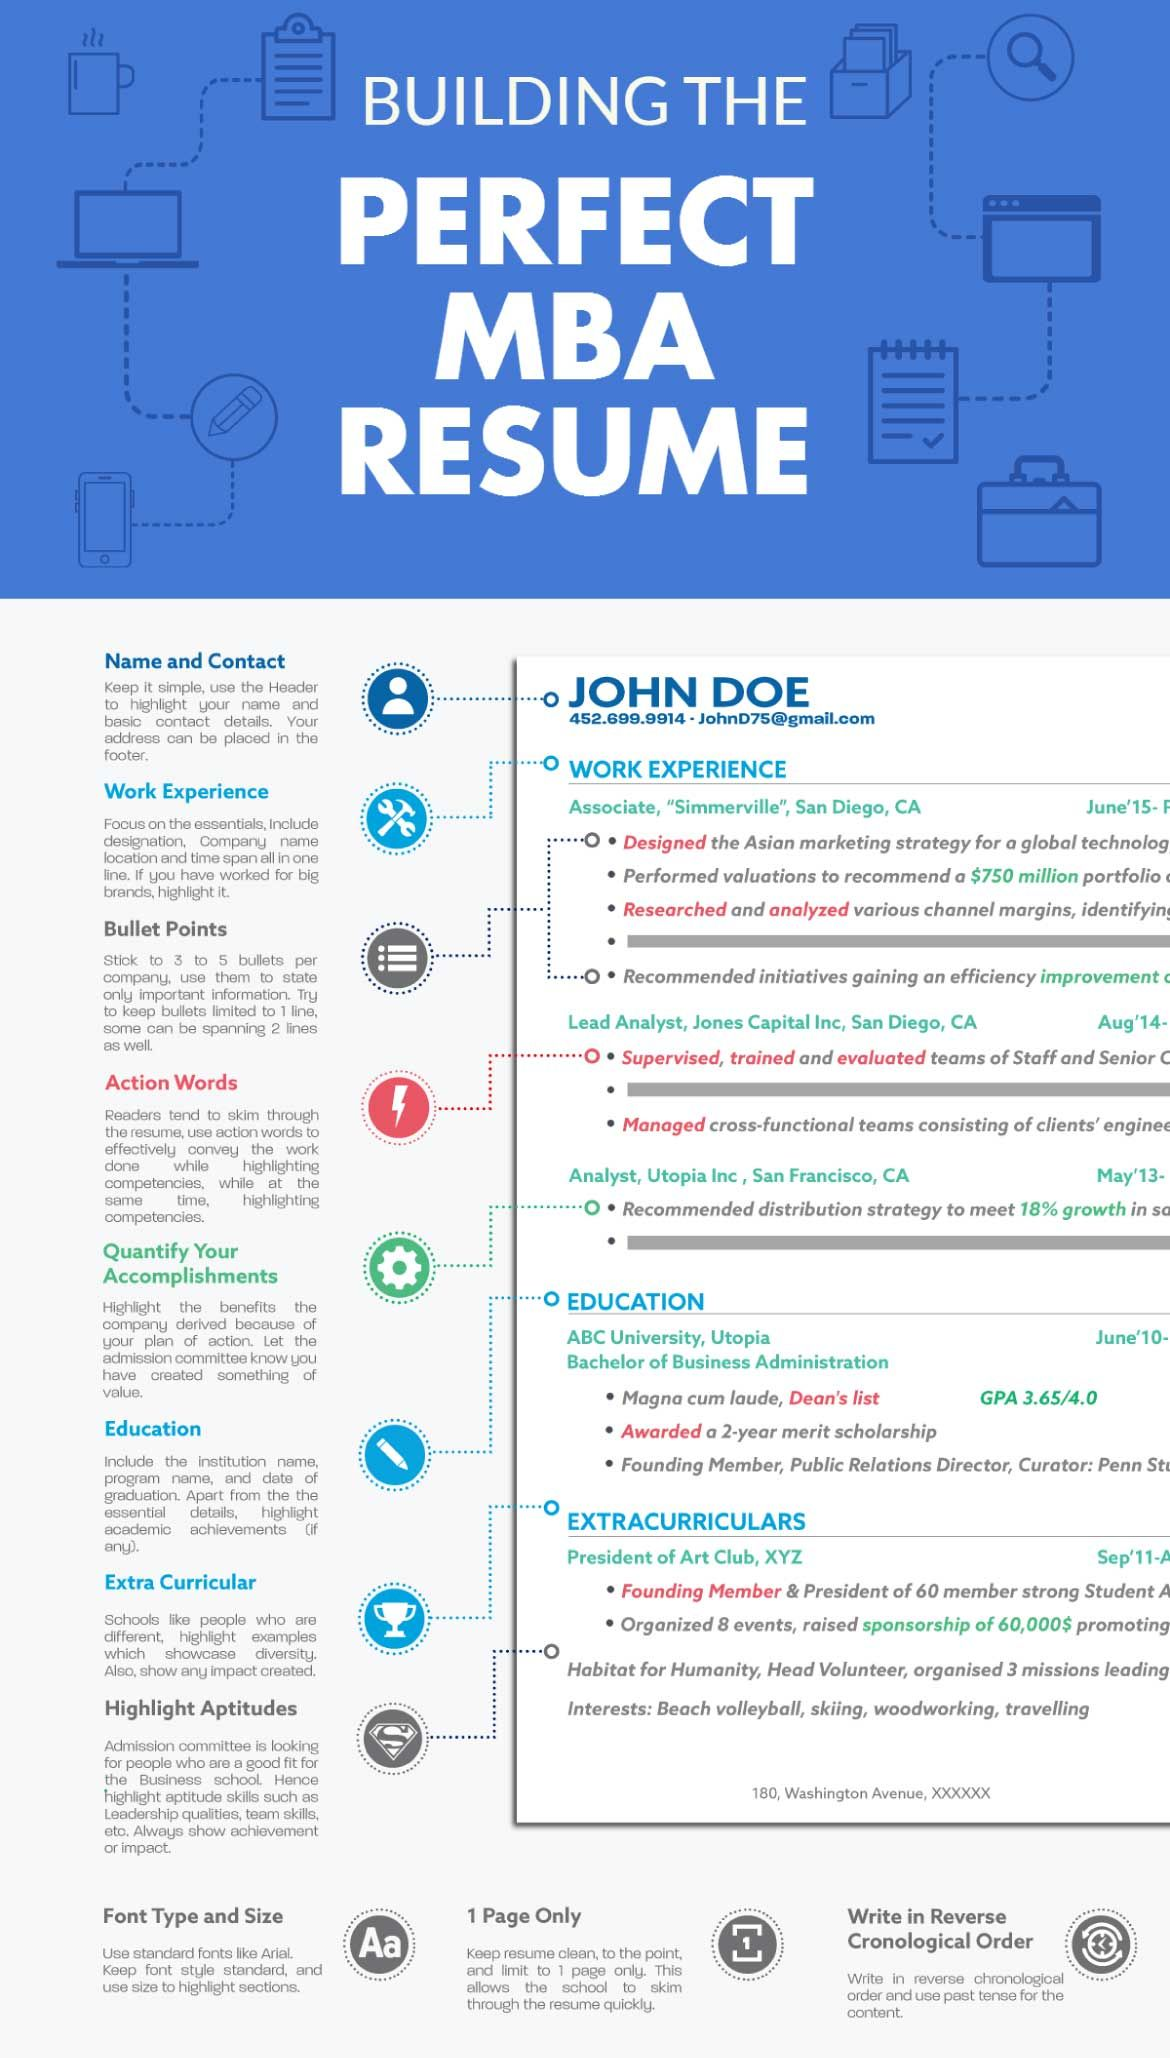 steps towards creating the perfect mba resume infographic learning infographics business Resume Wharton Business School Resume